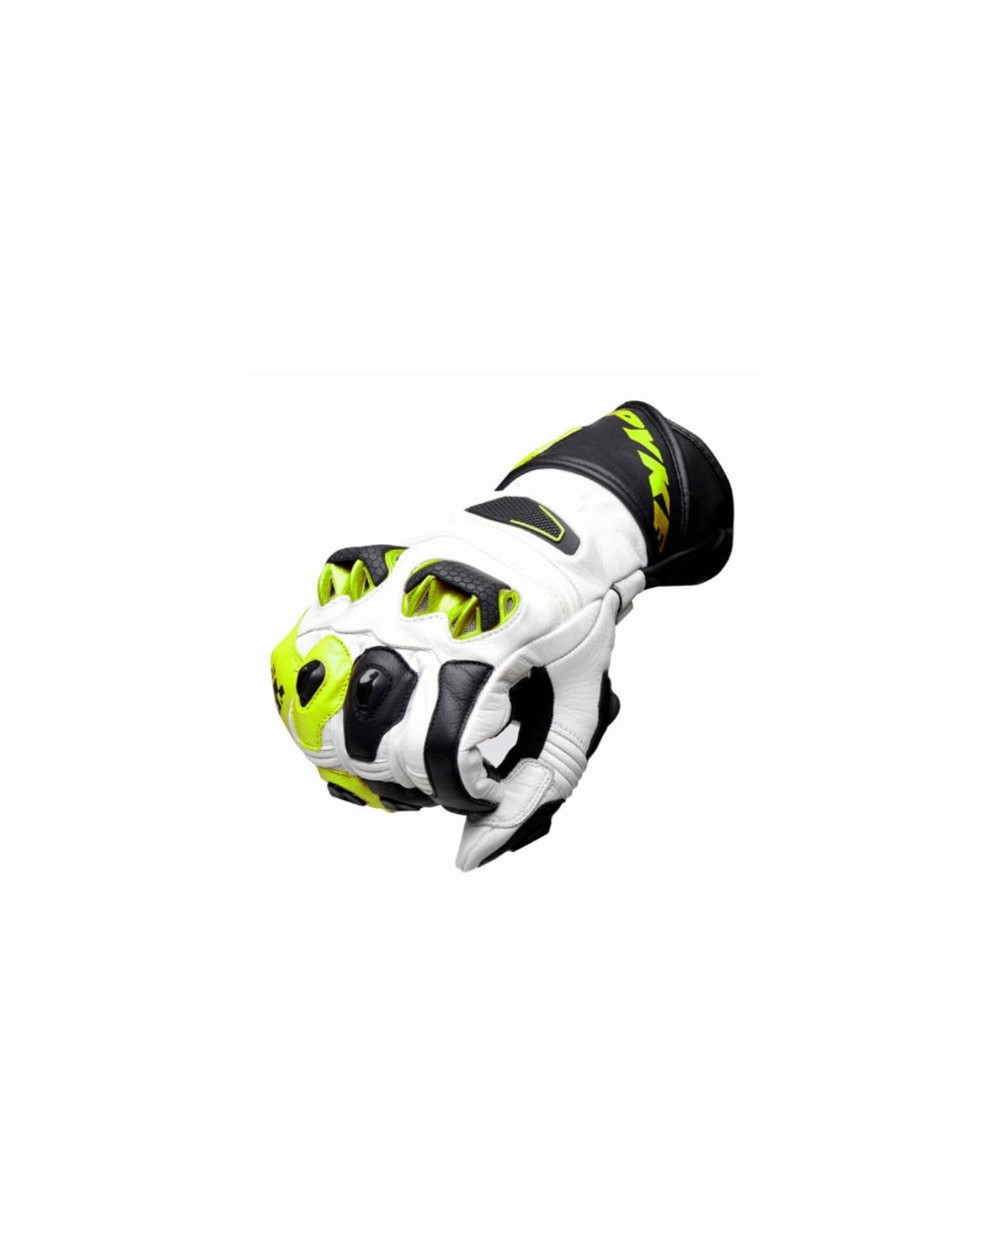 Guante racing moto spyke tech race amarillo fluor